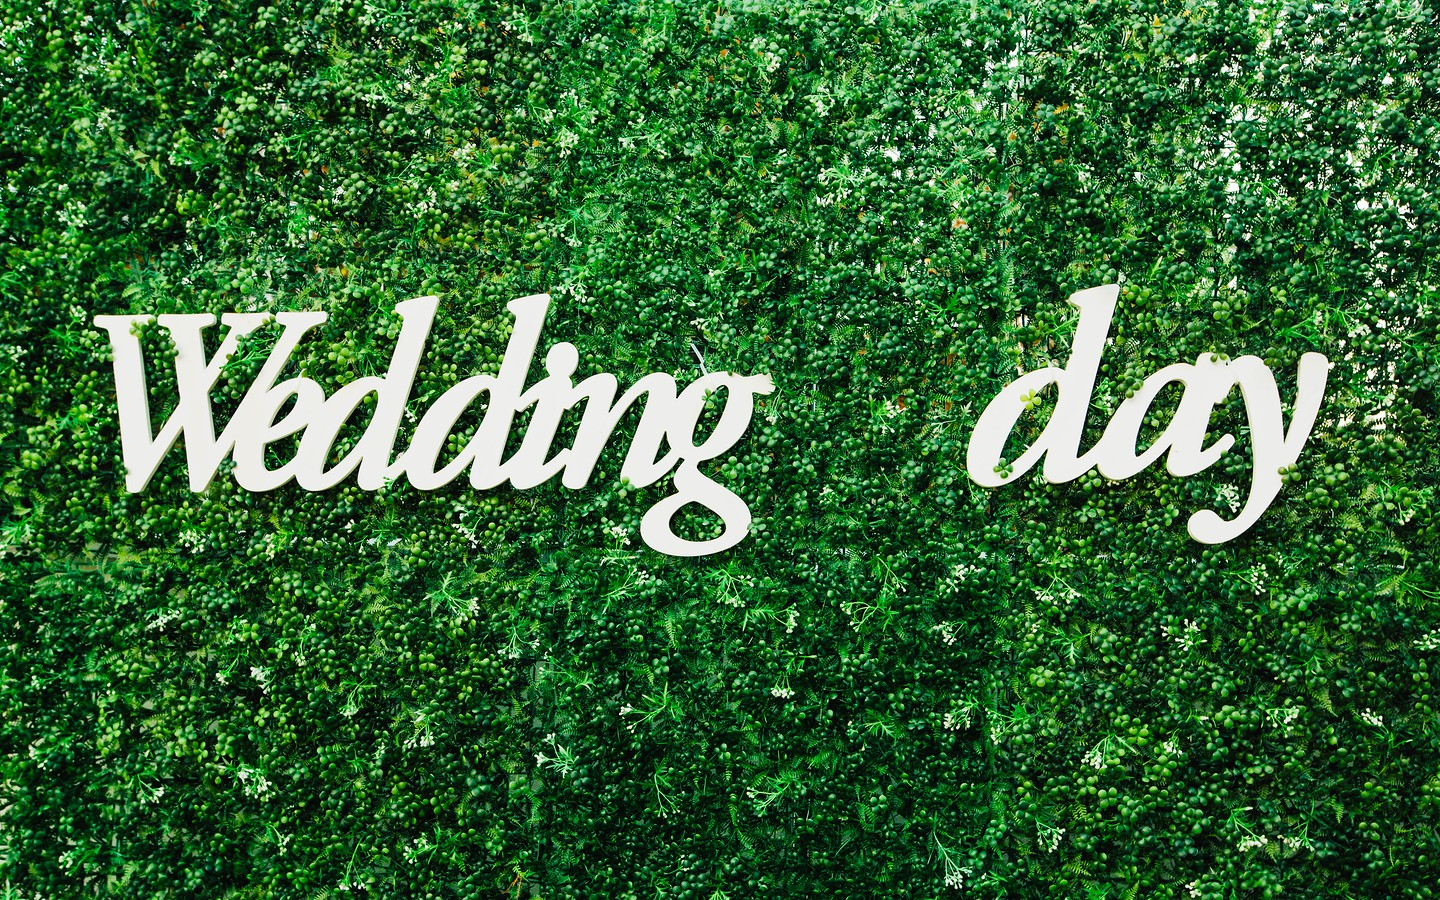 Wooden wedding day sign on lush green backdrop